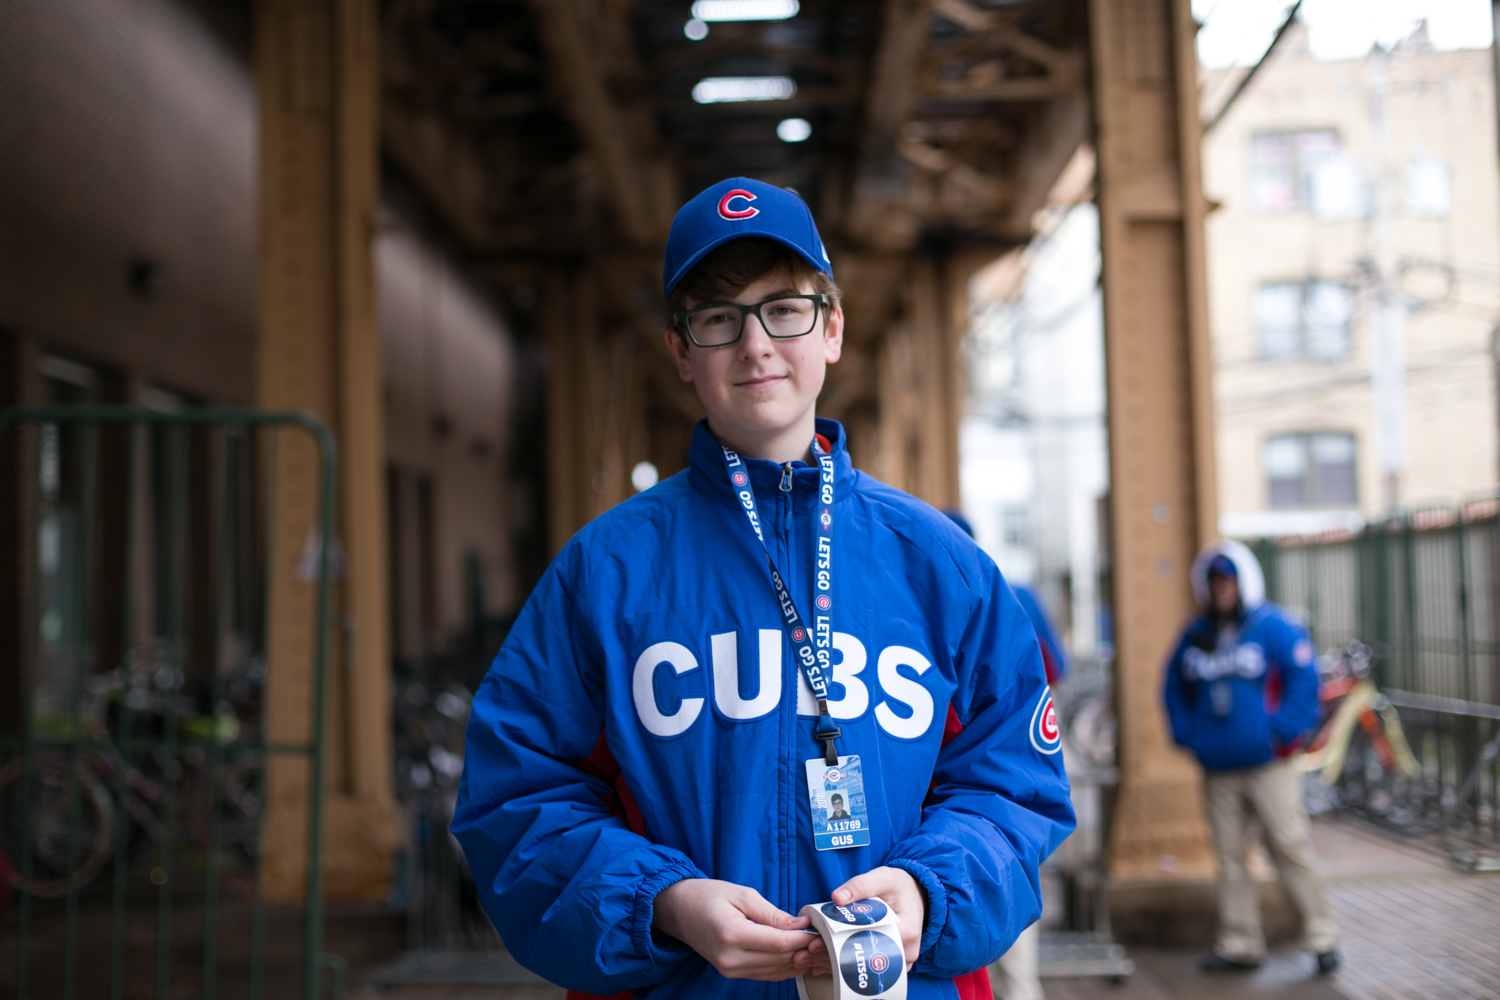 Gus hands out free stickers during his downtime at the bike check outside Wrigley Field. He's happy that his first job is working for his favorite team. 6/24